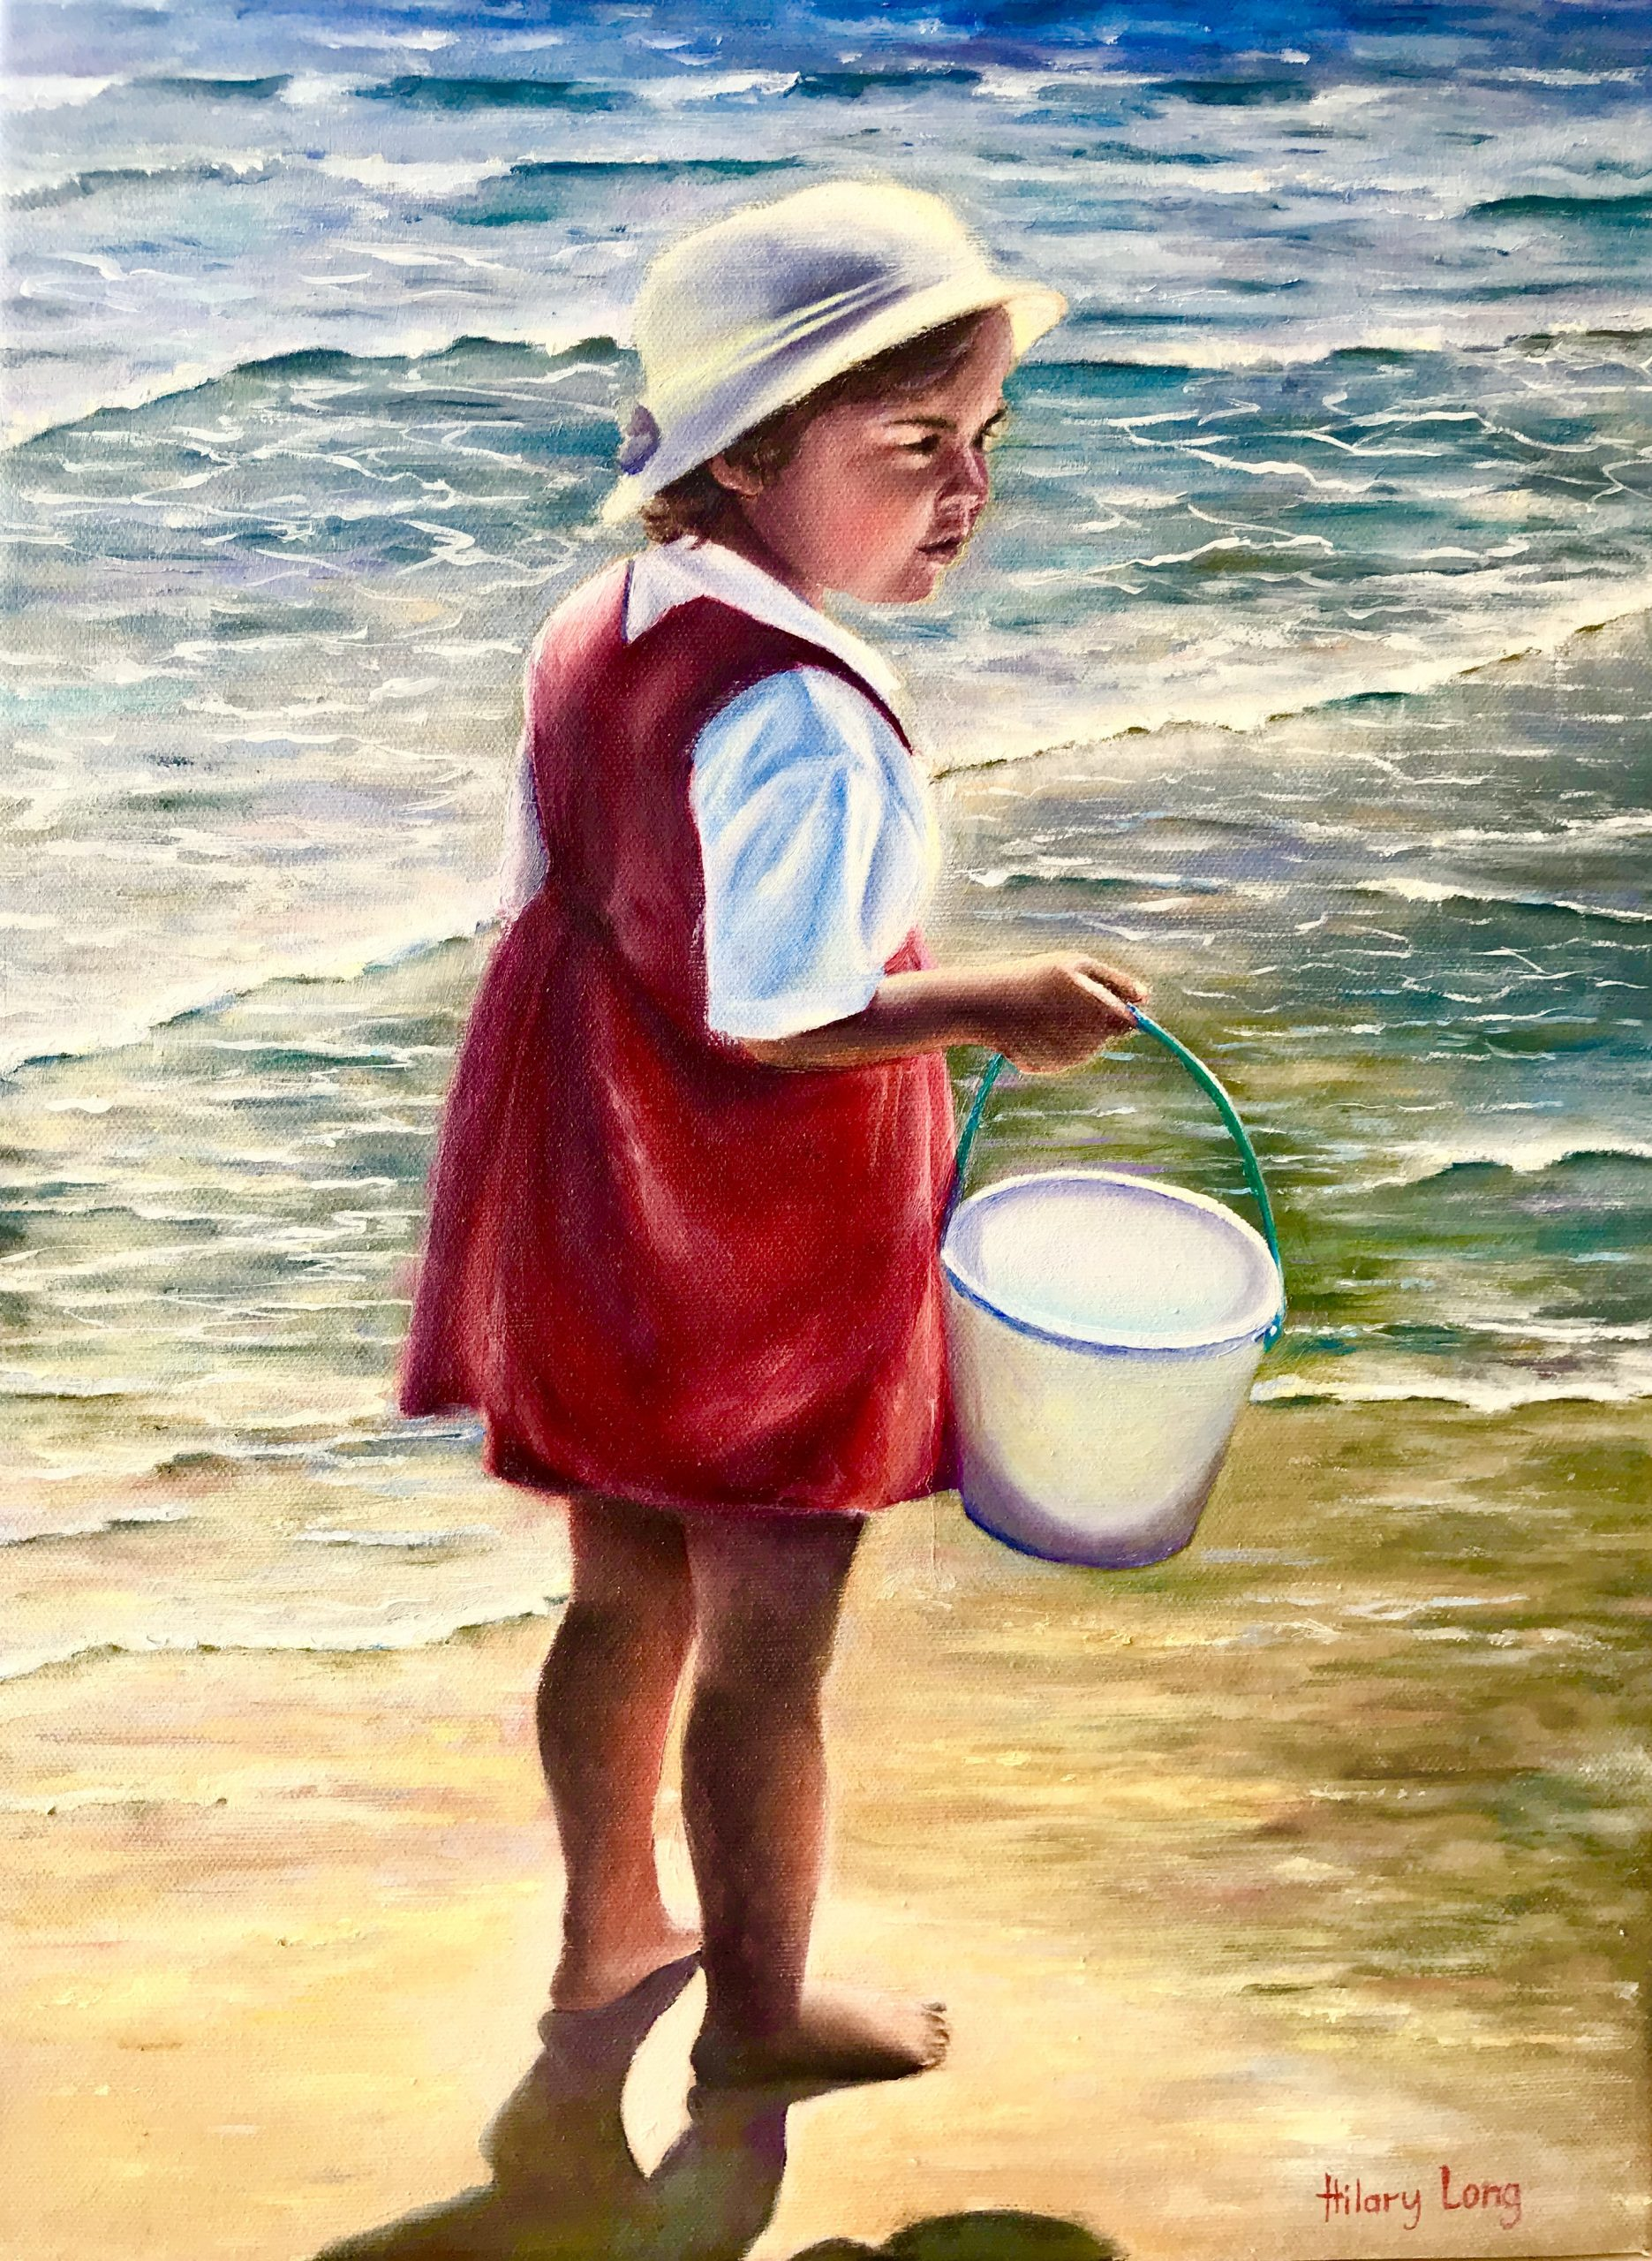 Girl with bucket by the sea shore